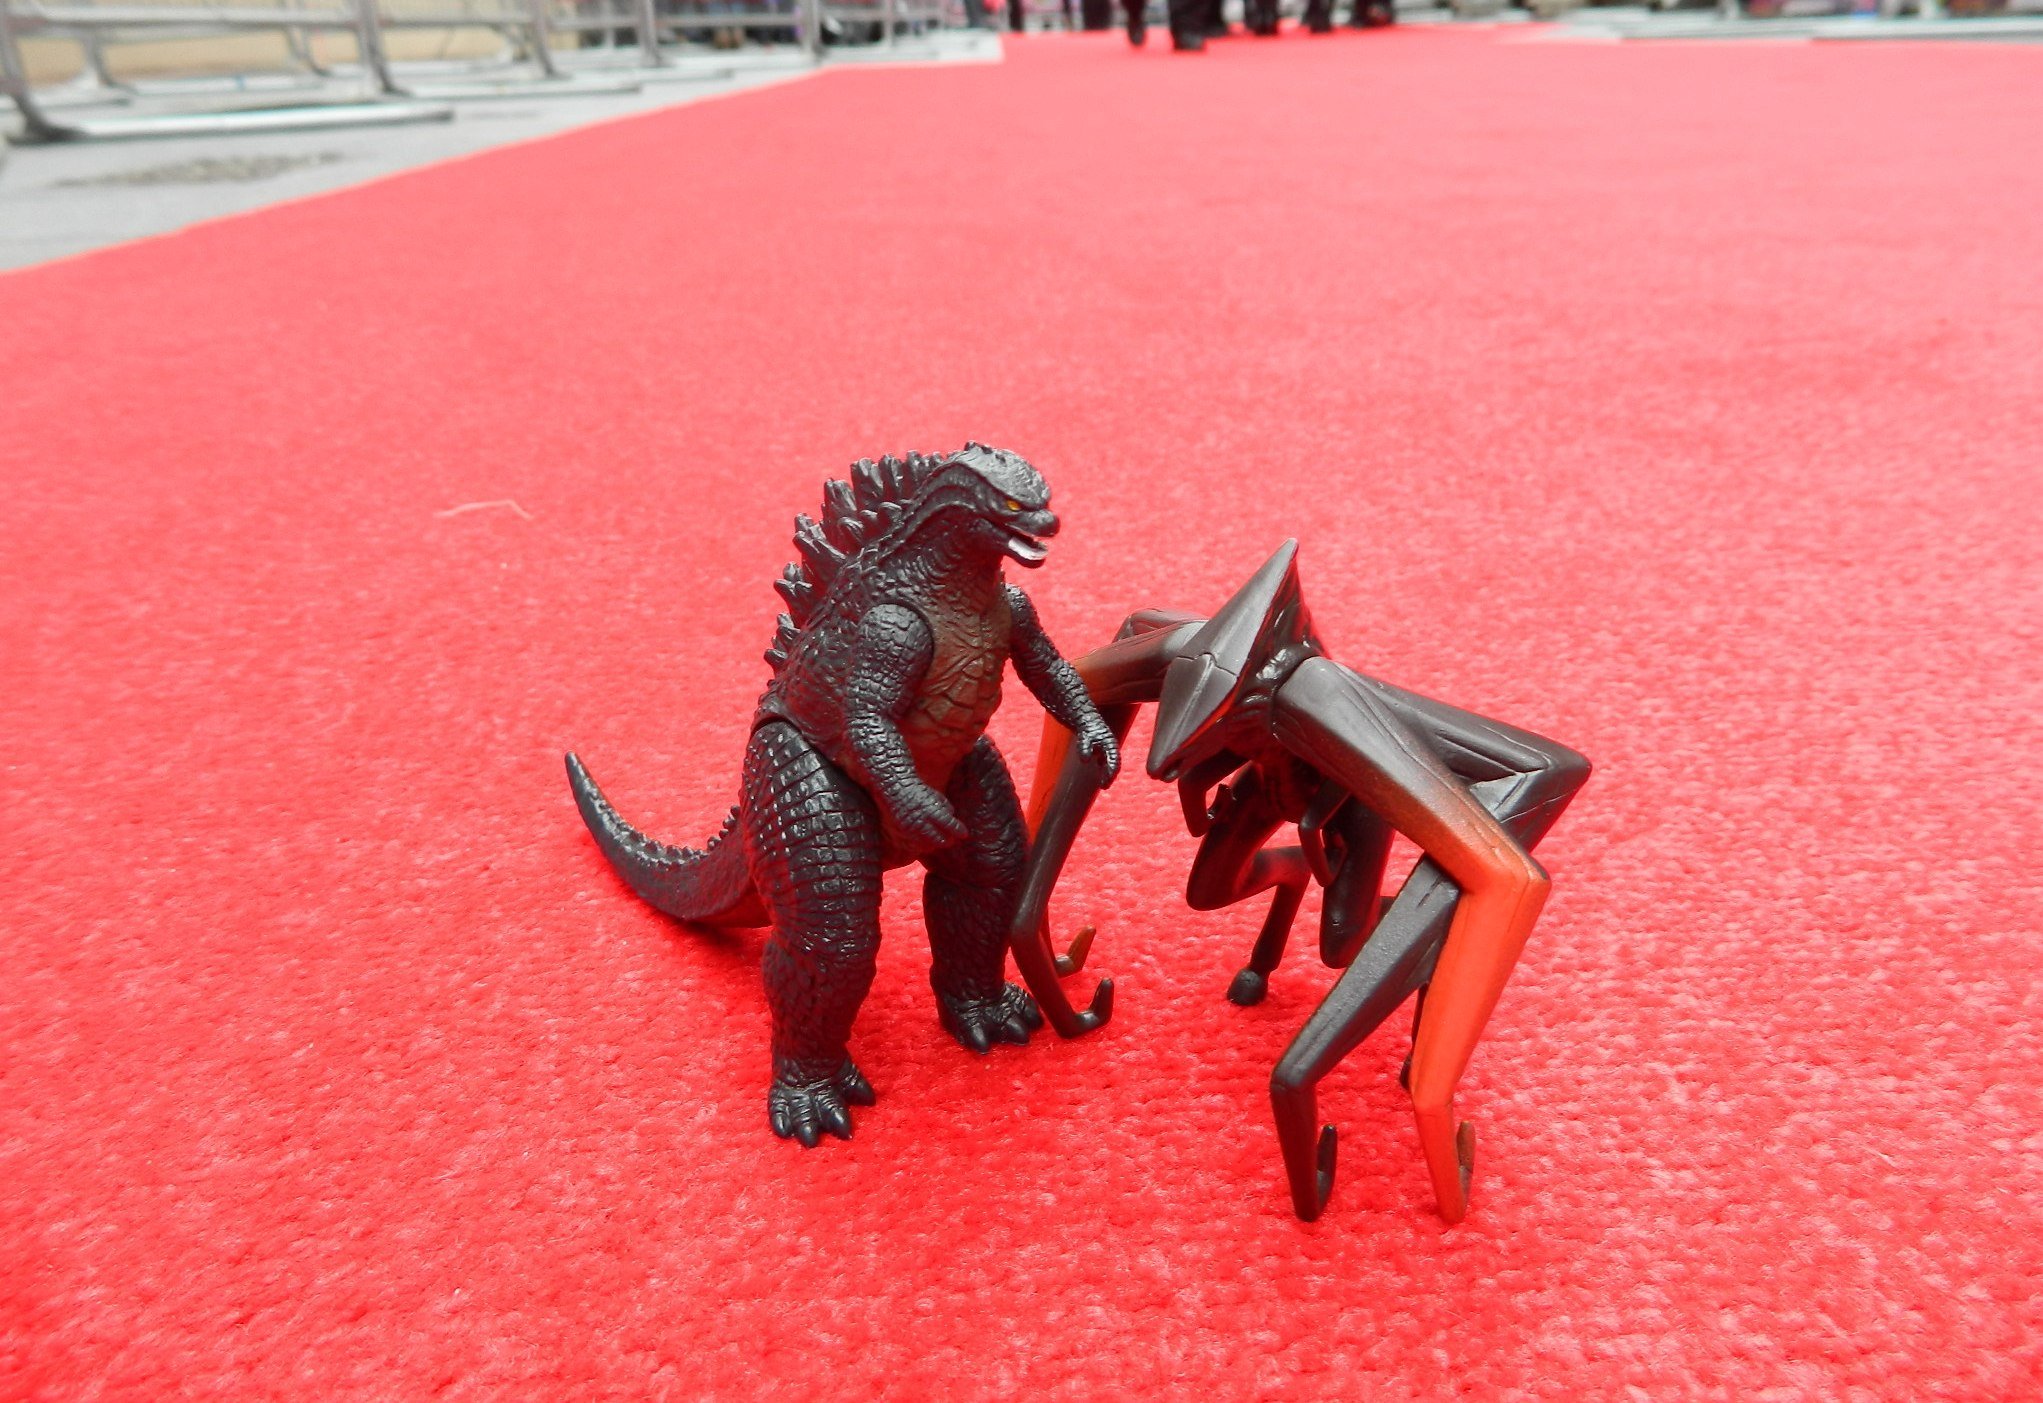 Exclusive To Toys R Us Godzilla Toys